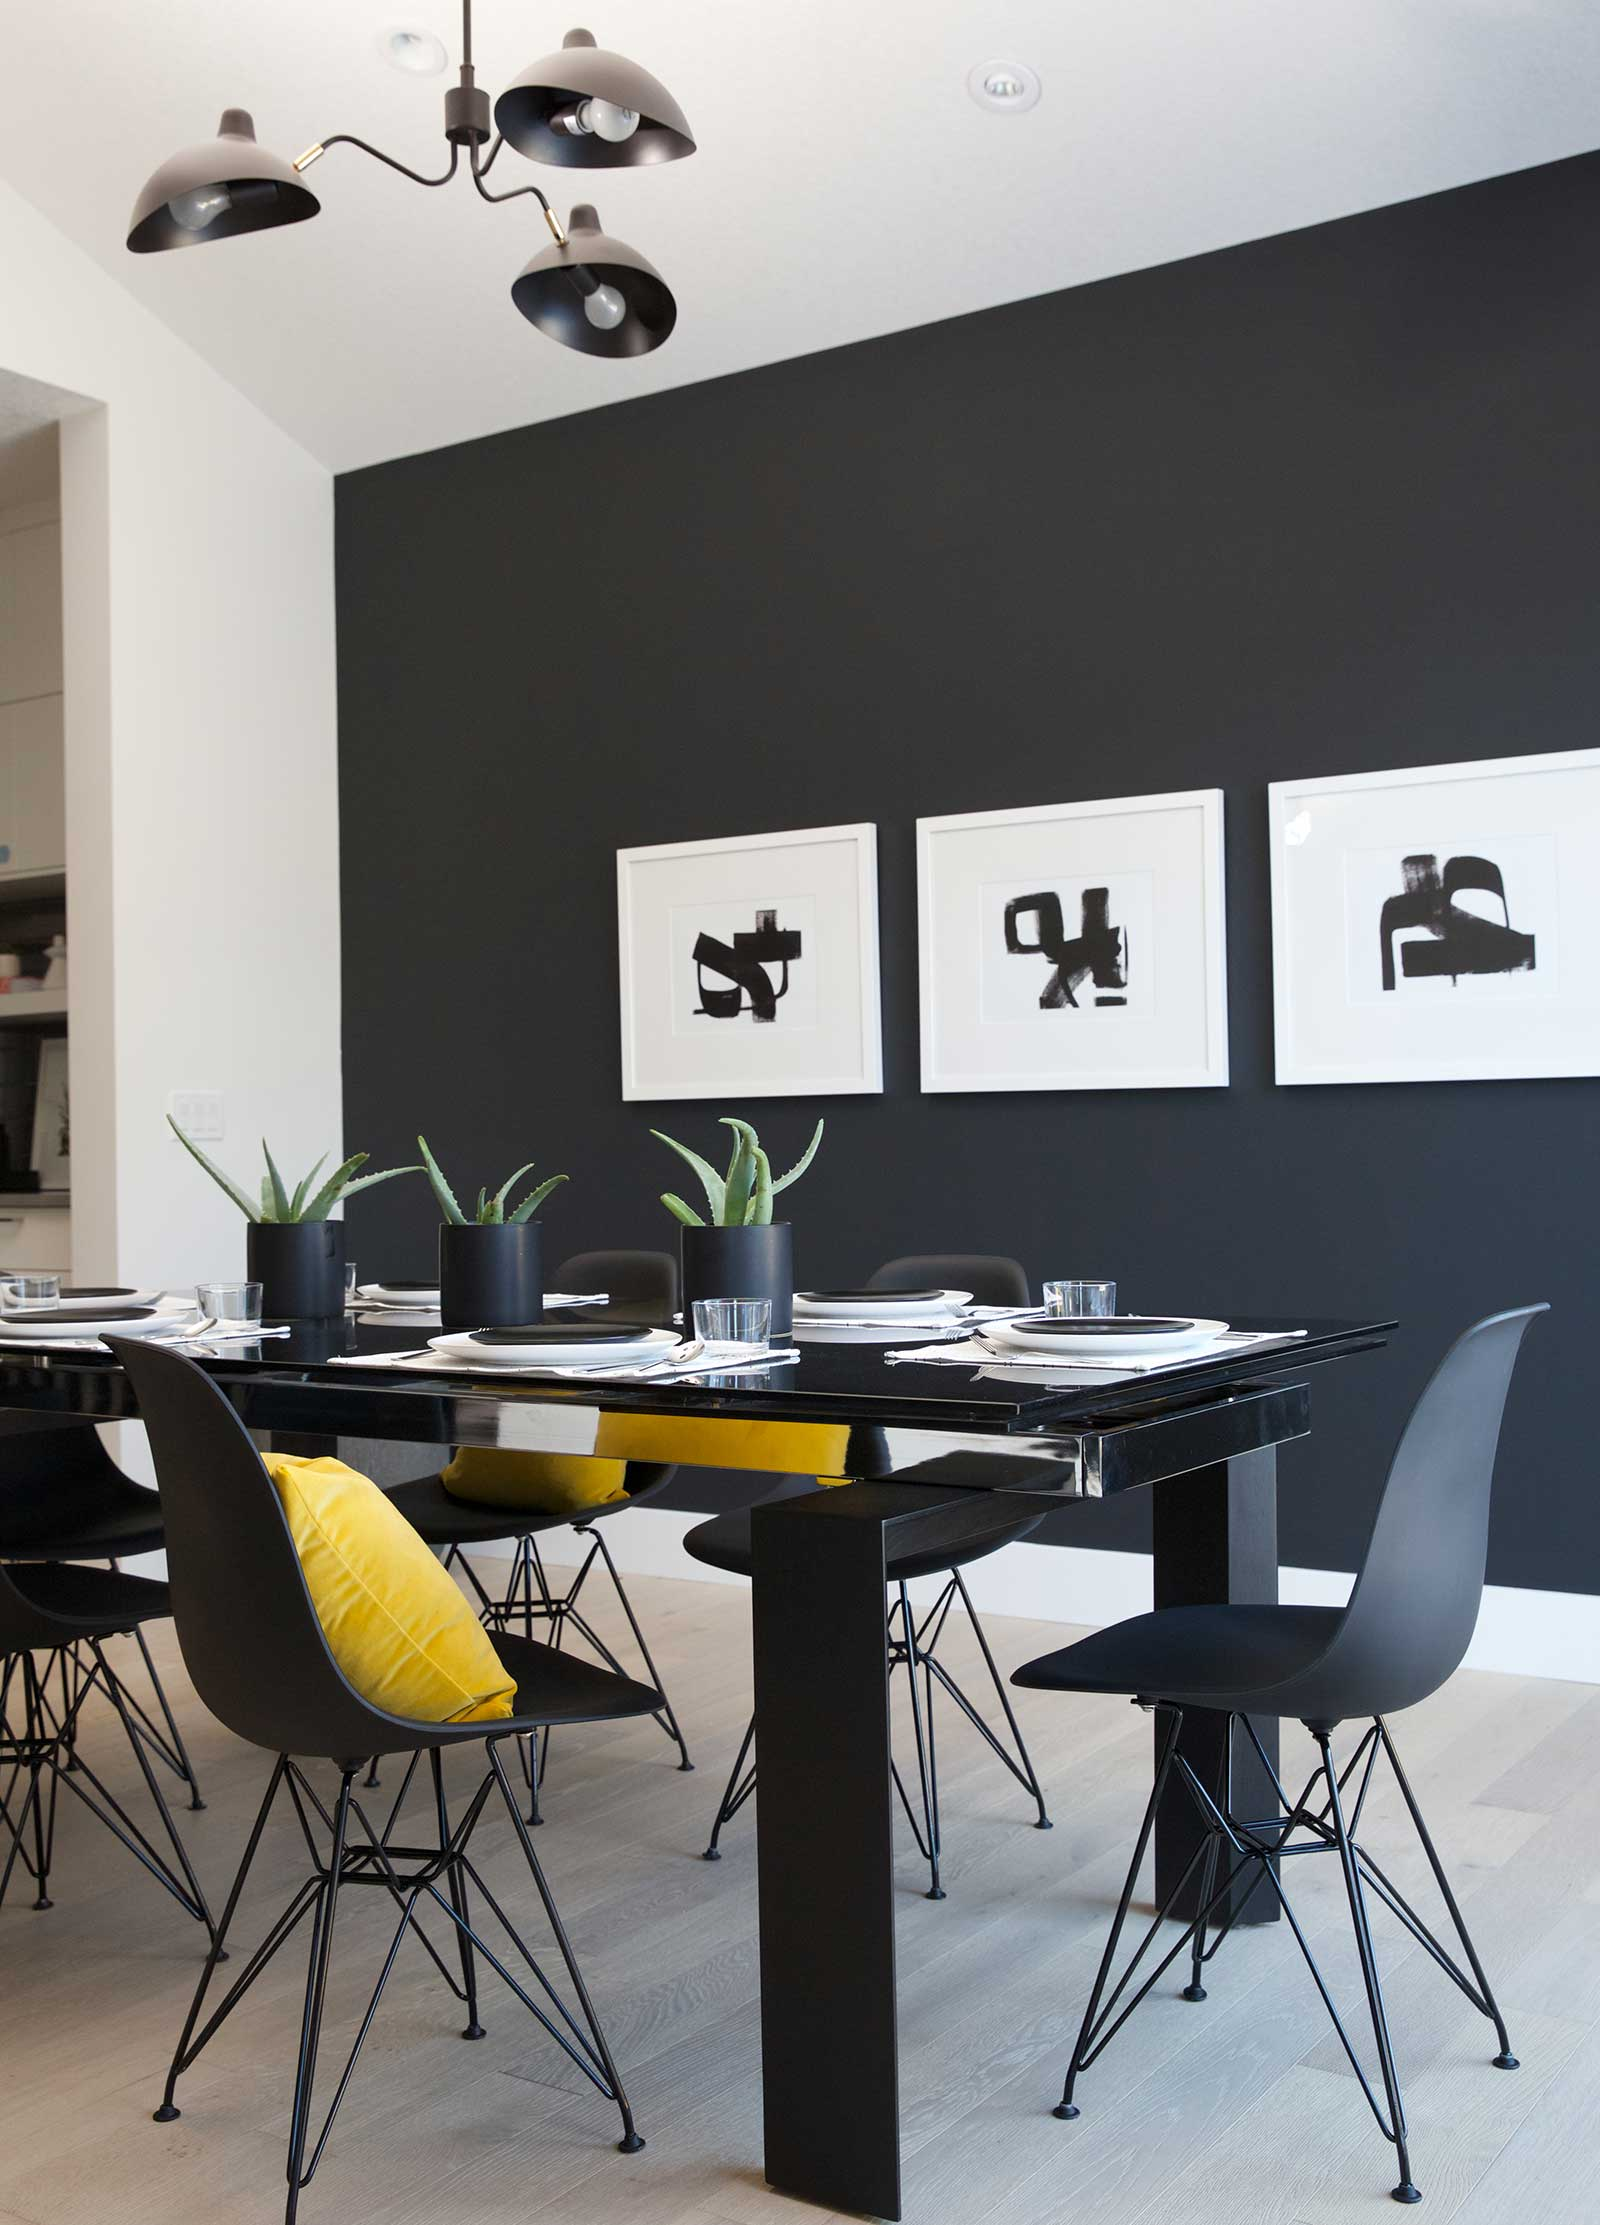 Homes by Dream Showhome | Real Estate Development Interior Design, Furniture Procurement and Styling